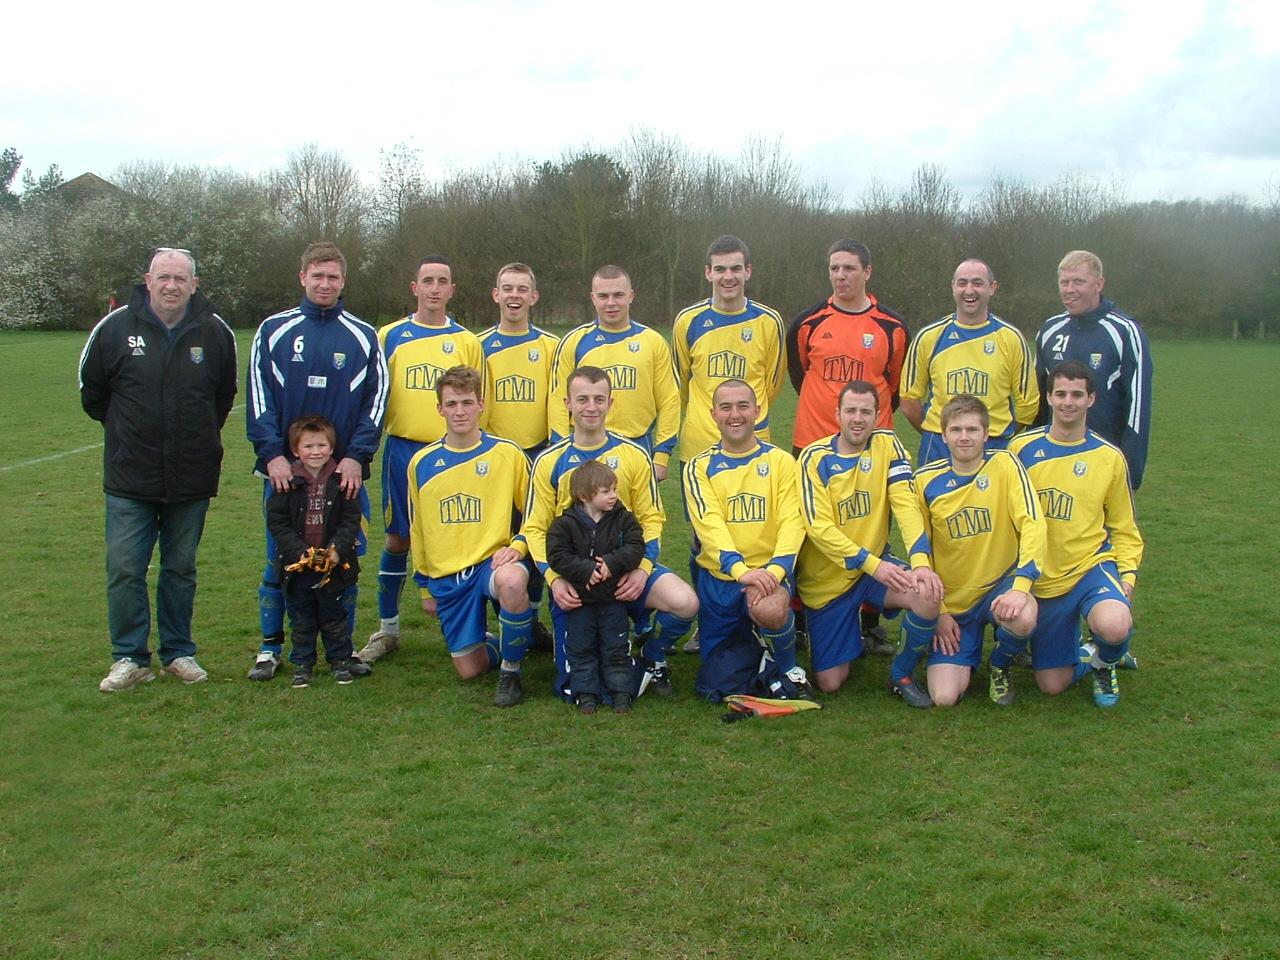 Bedfordshire County Football League